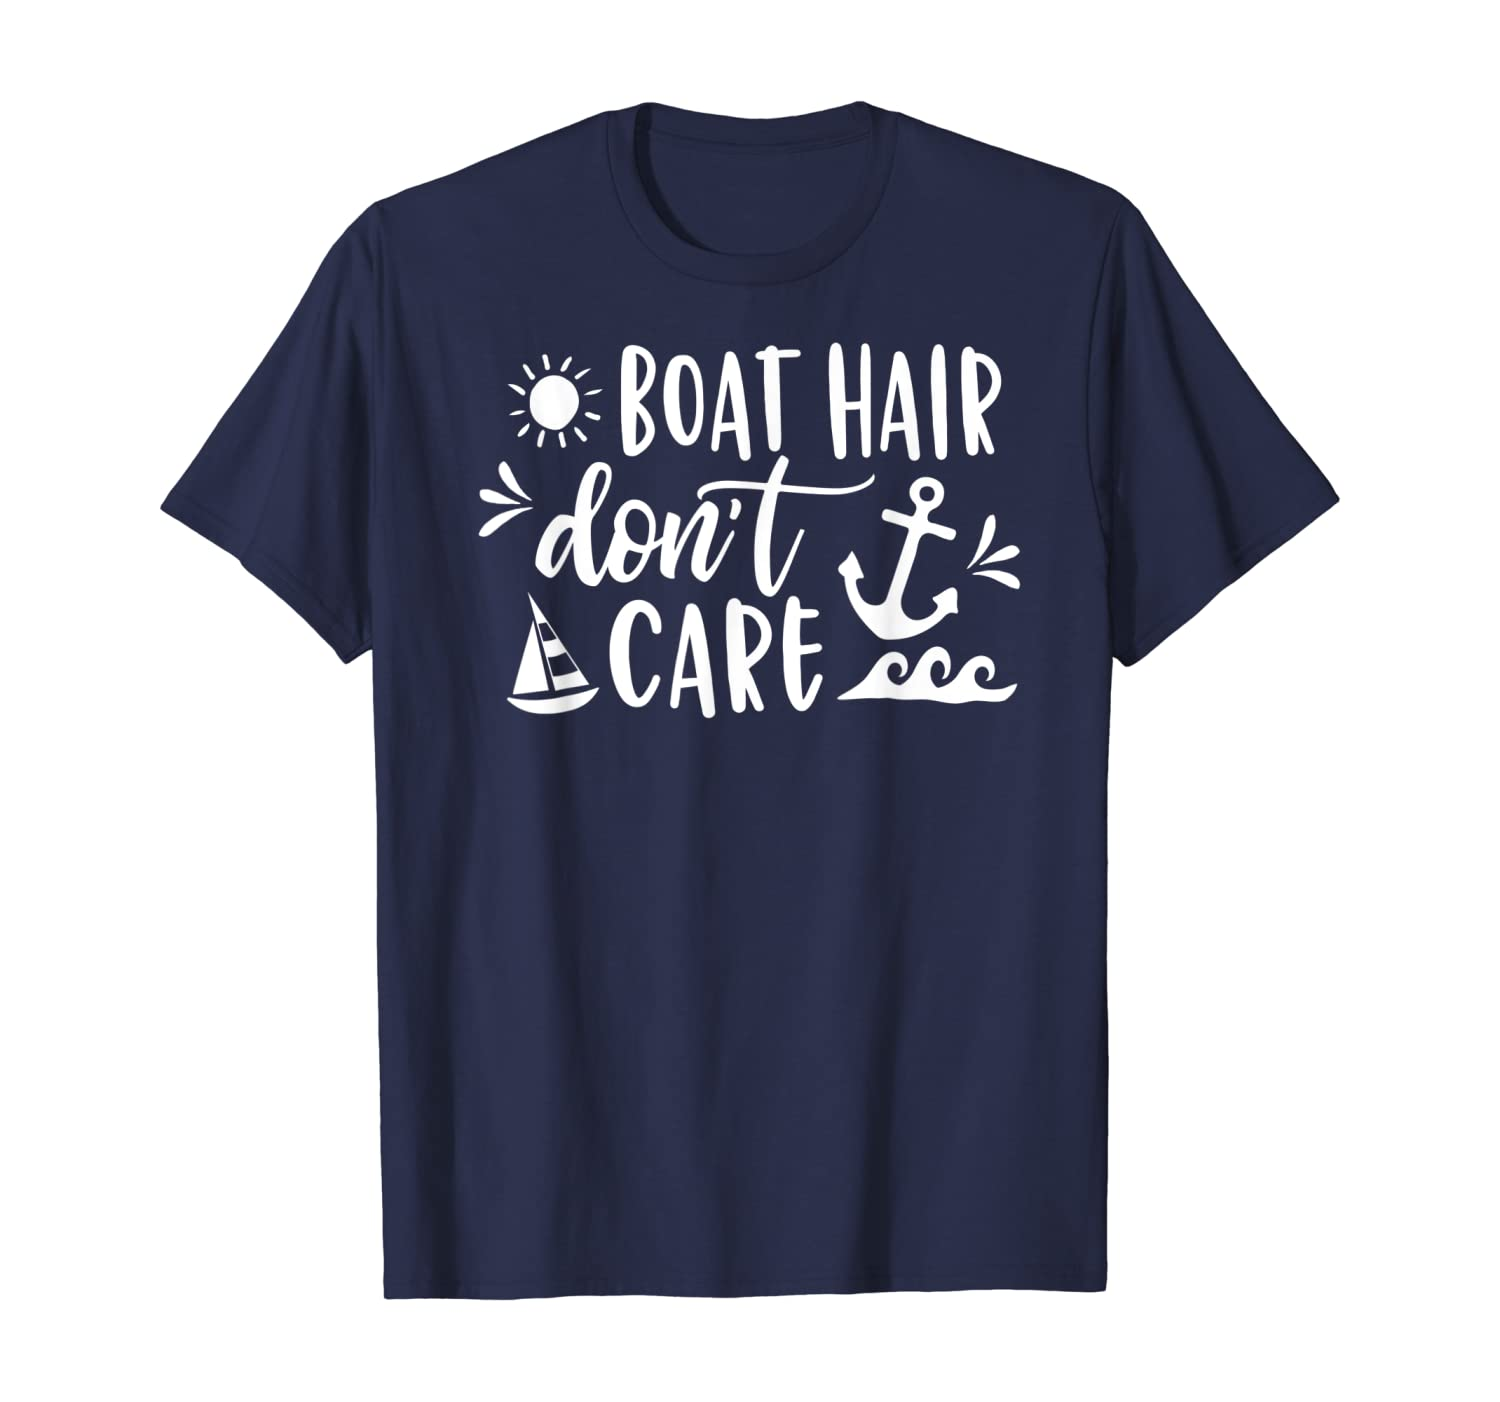 Boat Hair Don't Care T Shirt Boating Cruise Summer Men Women T-Shirt